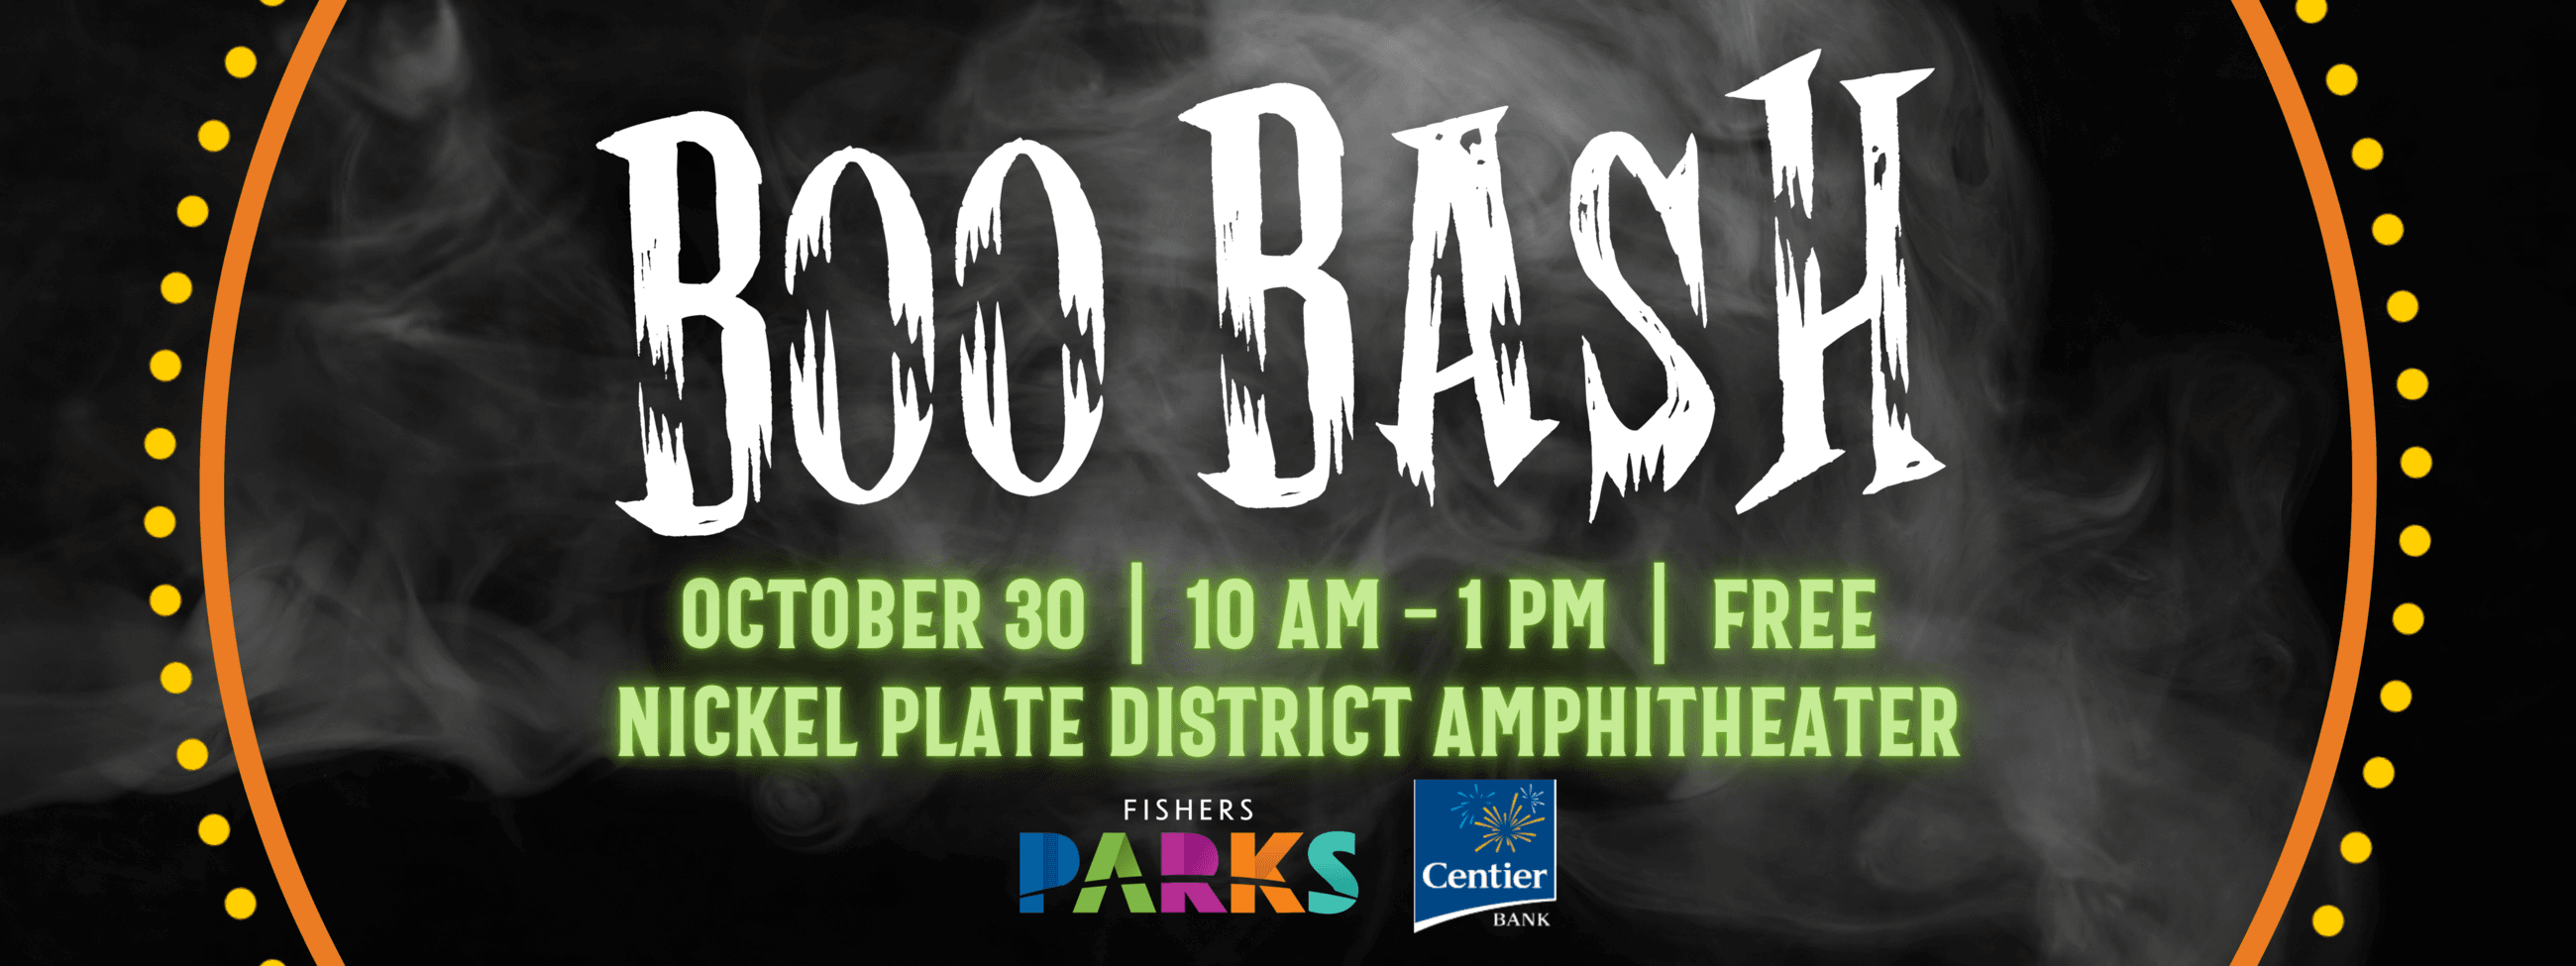 boo bash. october 30,. 10 am - 1 pm, free, nickel plate district amphitheater